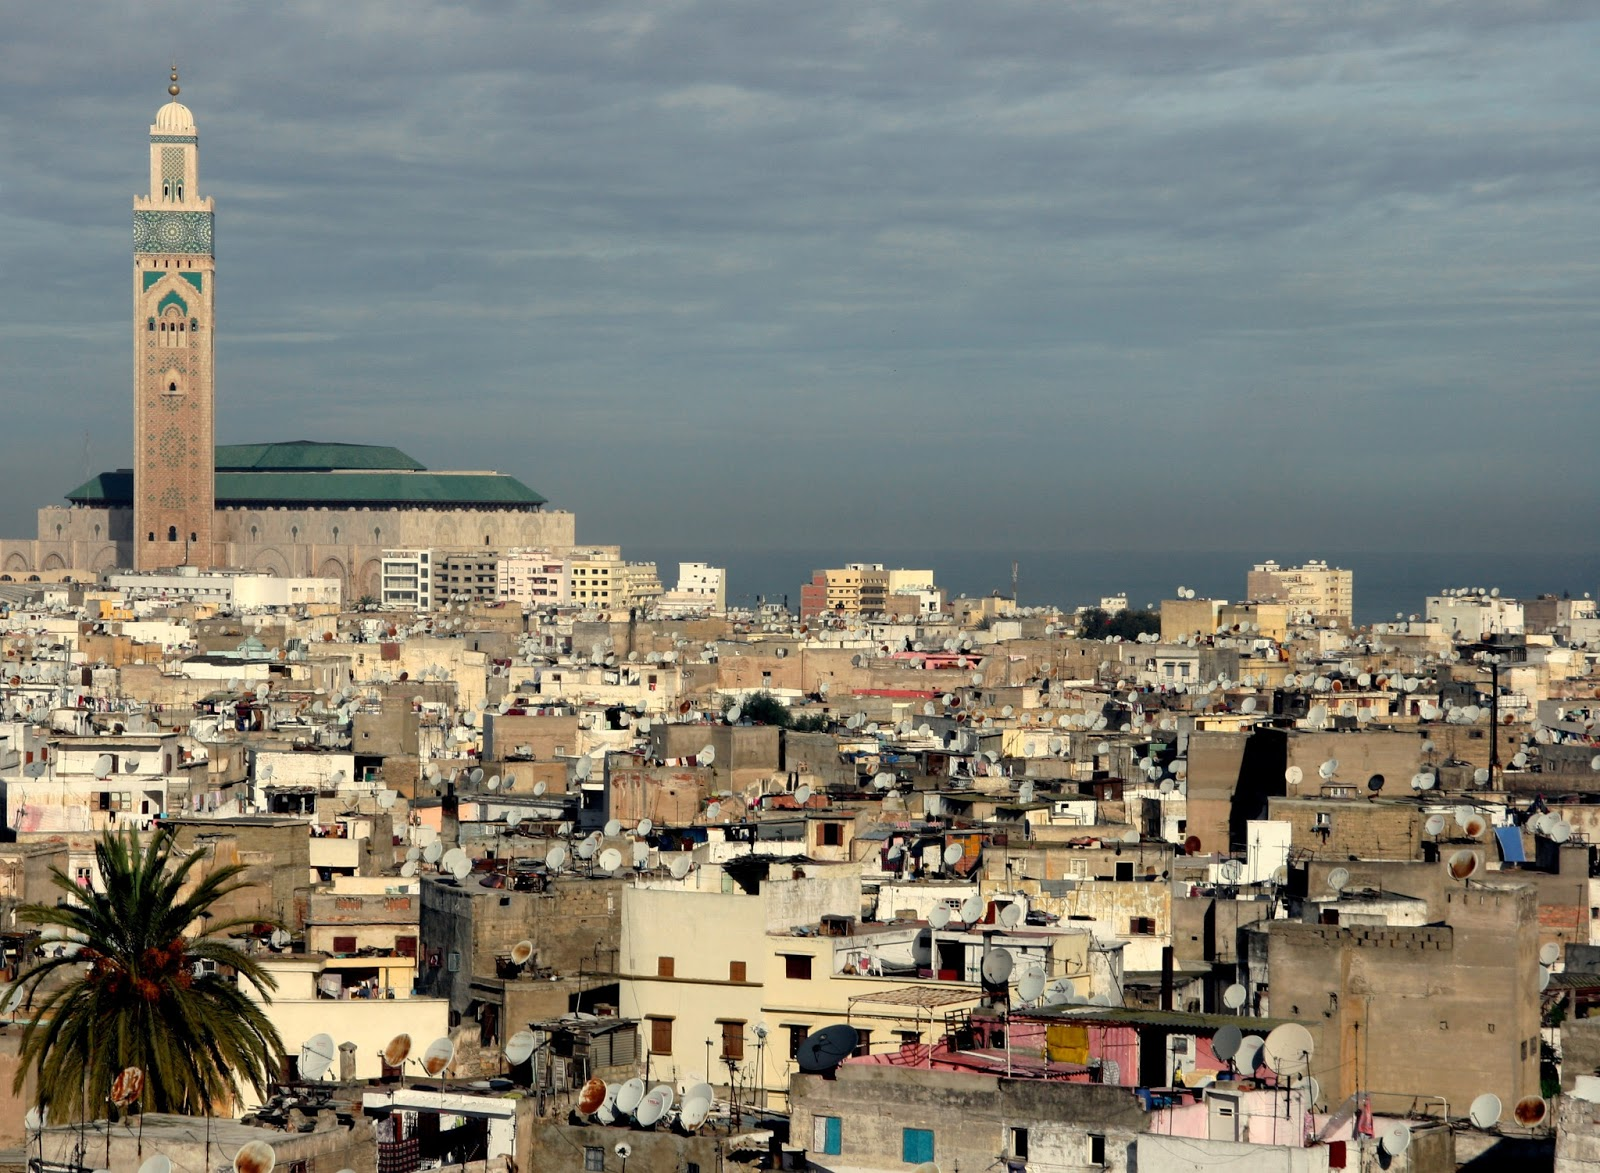 Casablanca Morocco  city photos gallery : ... الدار البيضاء . A voyage to Casablanca, Morocco, Africa